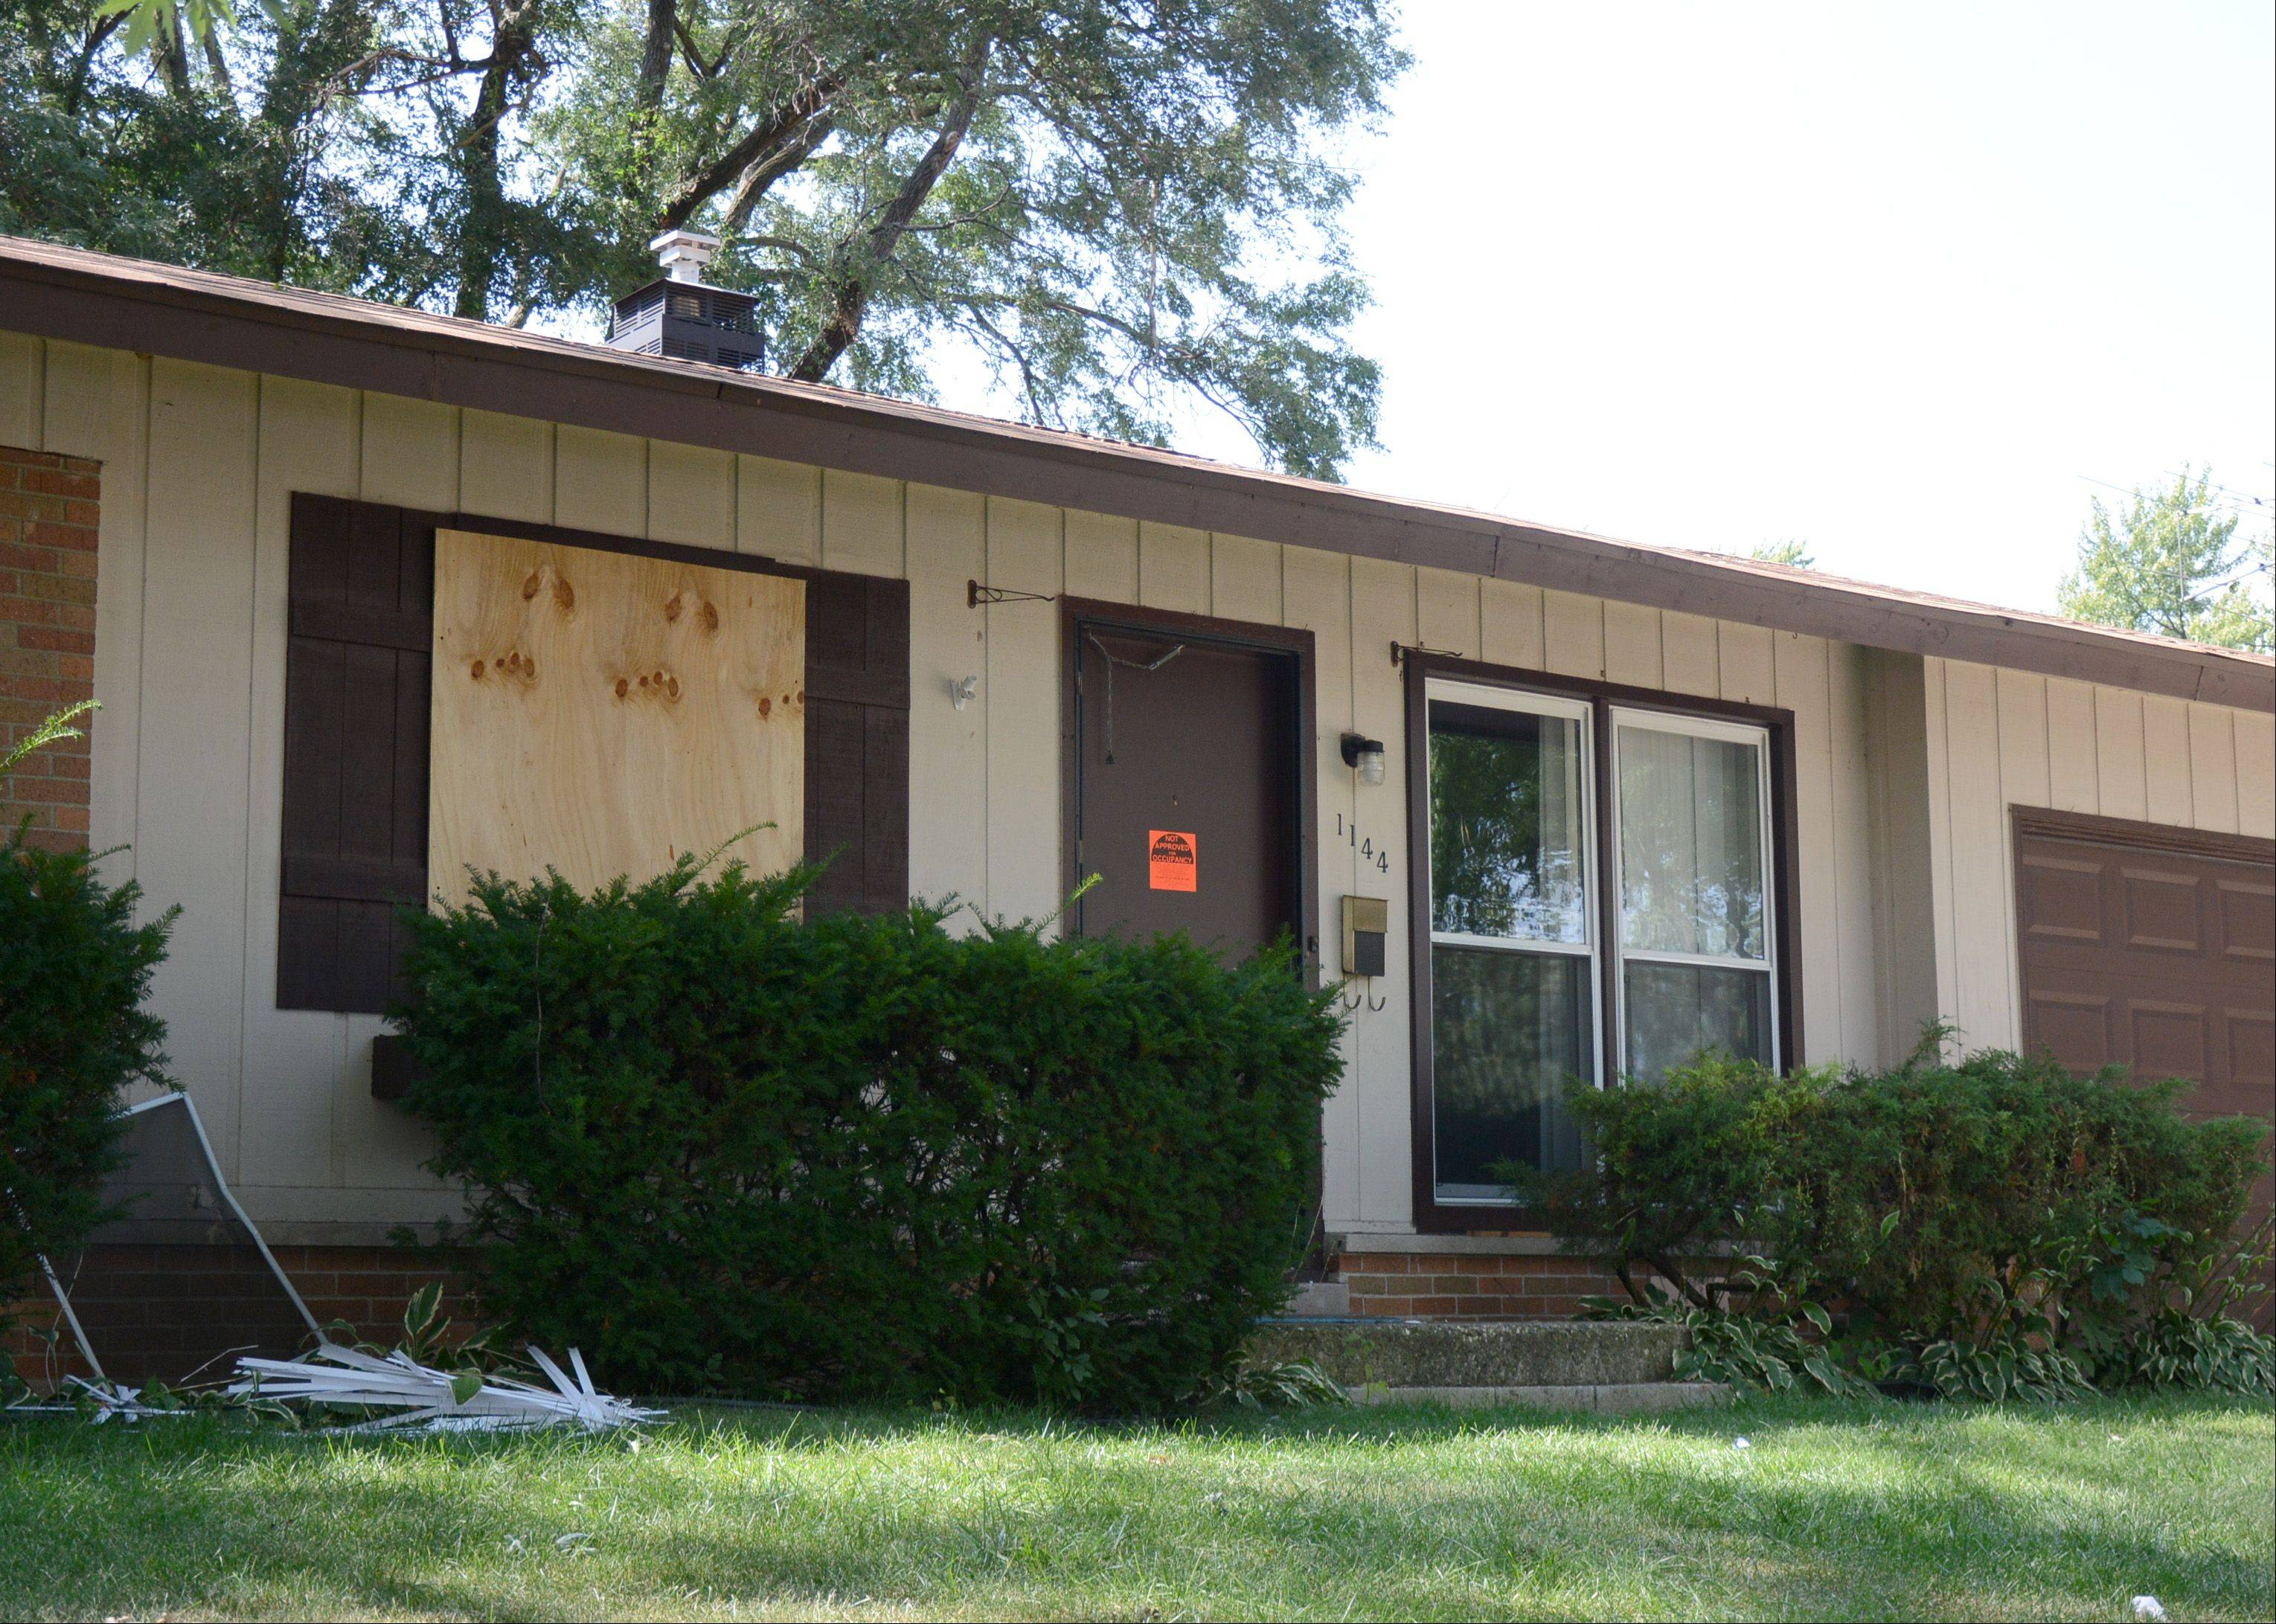 The windows of this home on Warwick Lane were boarded up Friday after the Elk Grove Village Police Department executed a search warrant there Thursday.